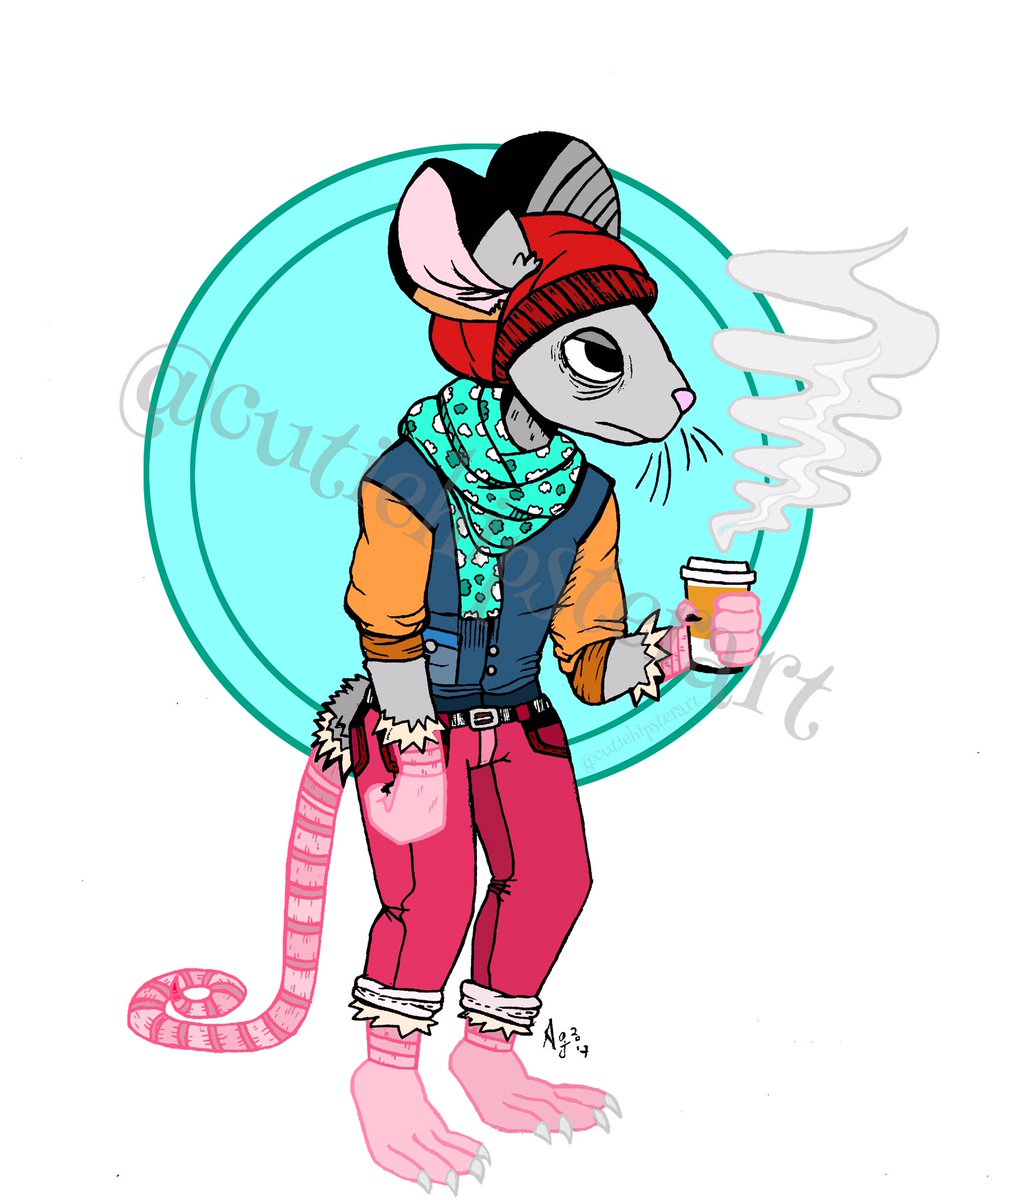 Rat hipster w coffee! #rat #furry #illustration #ink #graphicdesign #art #artist #hipster #coffee #artwork #doodle #drawing #sketch #draw<br>http://pic.twitter.com/65bMwCz2oP